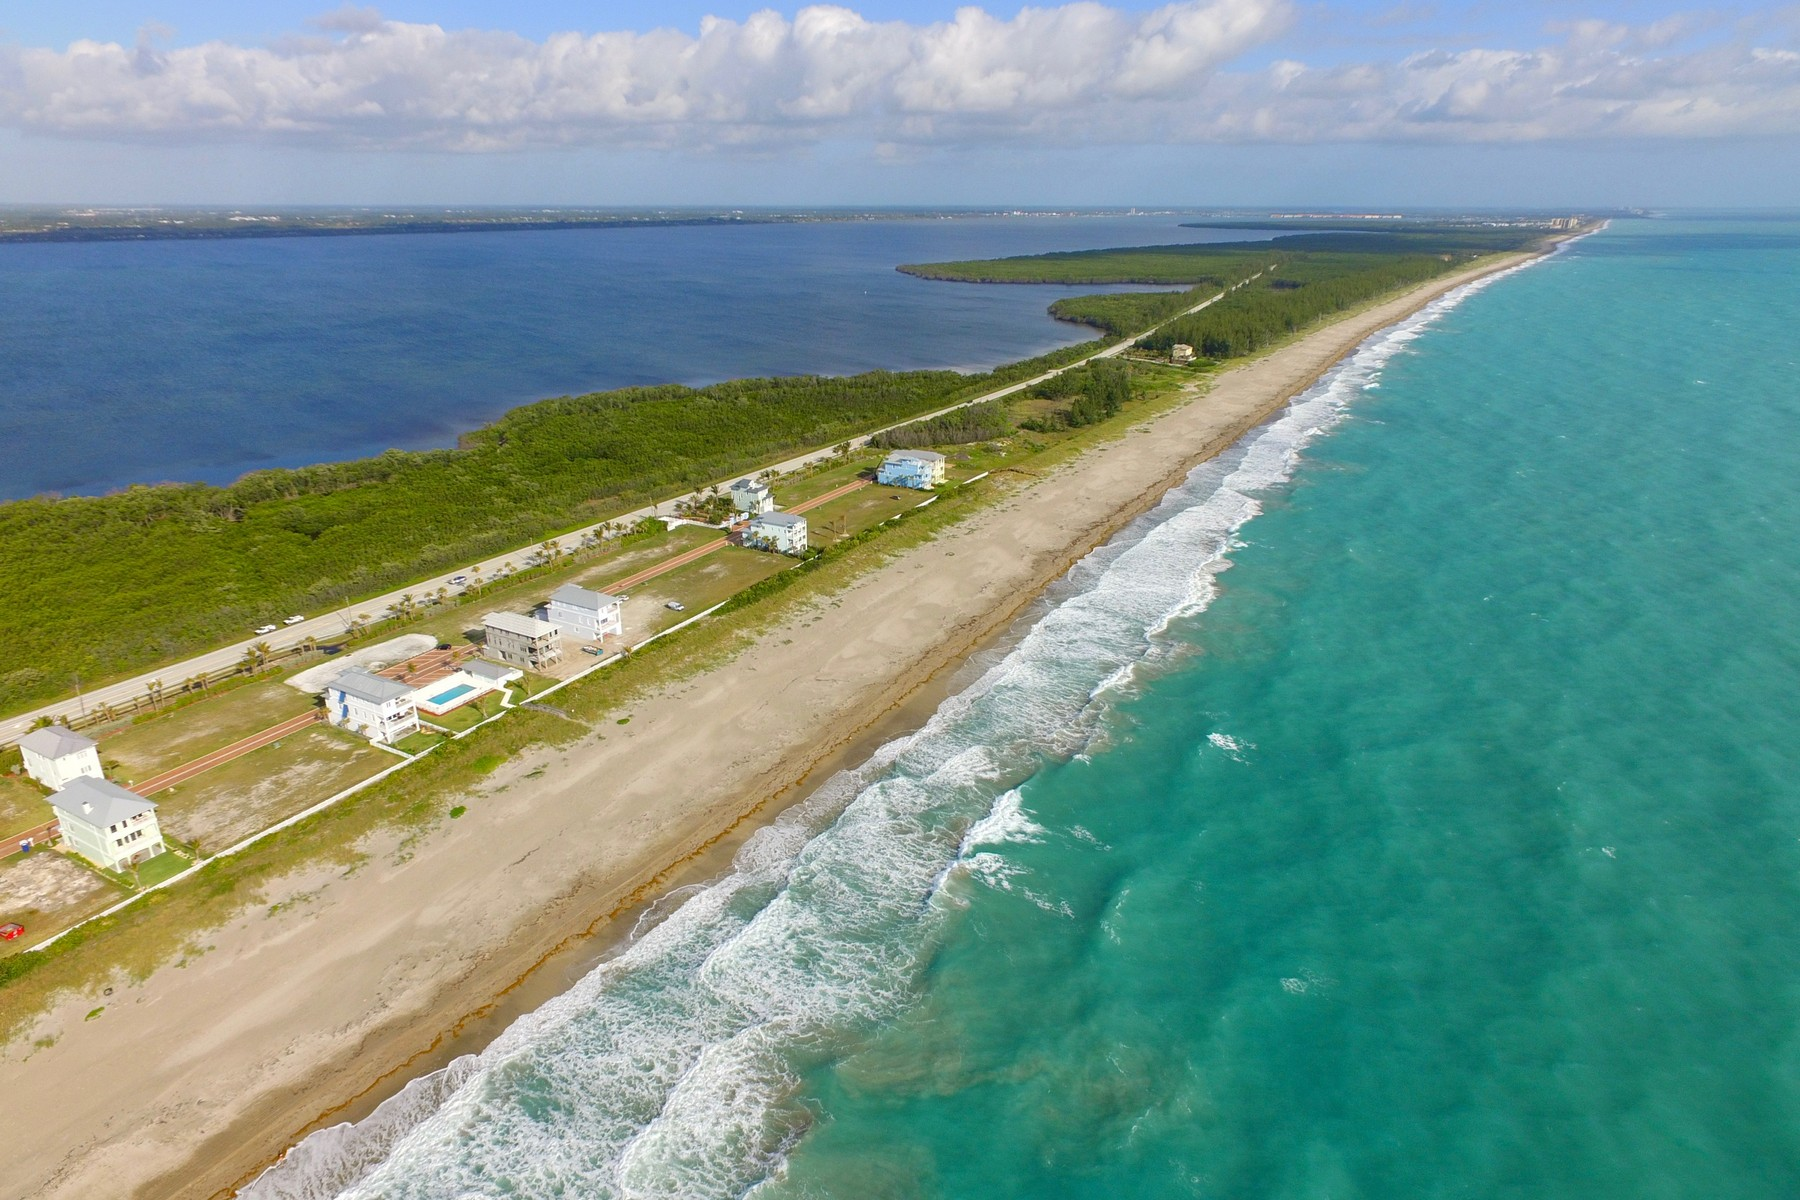 Land for Sale at Beautiful Gated Oceanfront Subdivision with Quaint Paver Streets 4820 Watersong Way Hutchinson Island, Florida 34949 United States